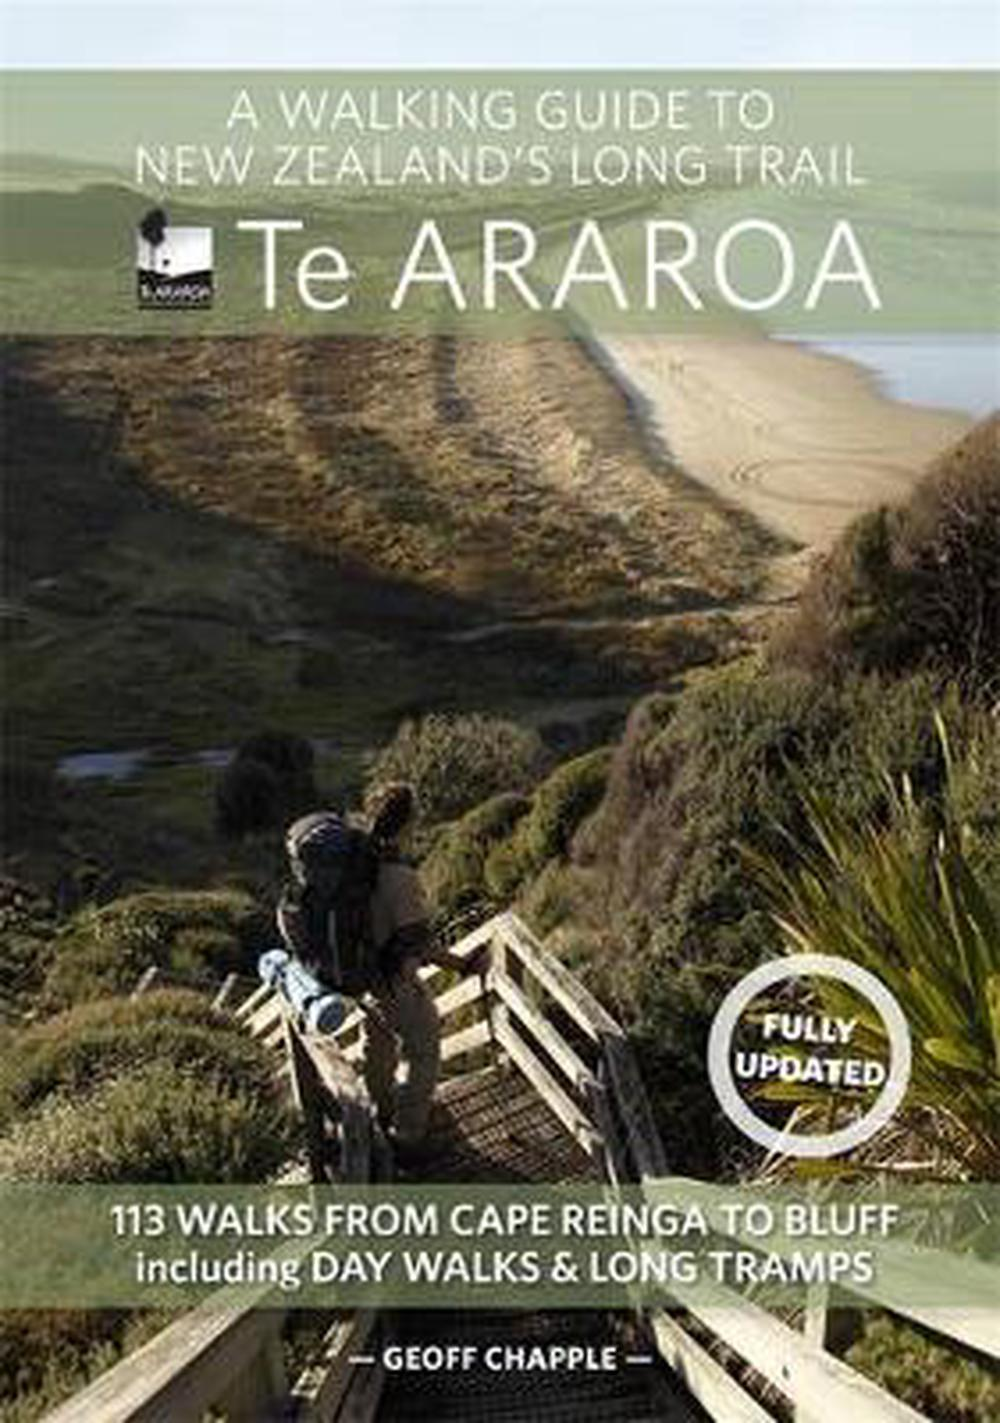 A Walking Guide To New Zealand S Long Trail By Geoff